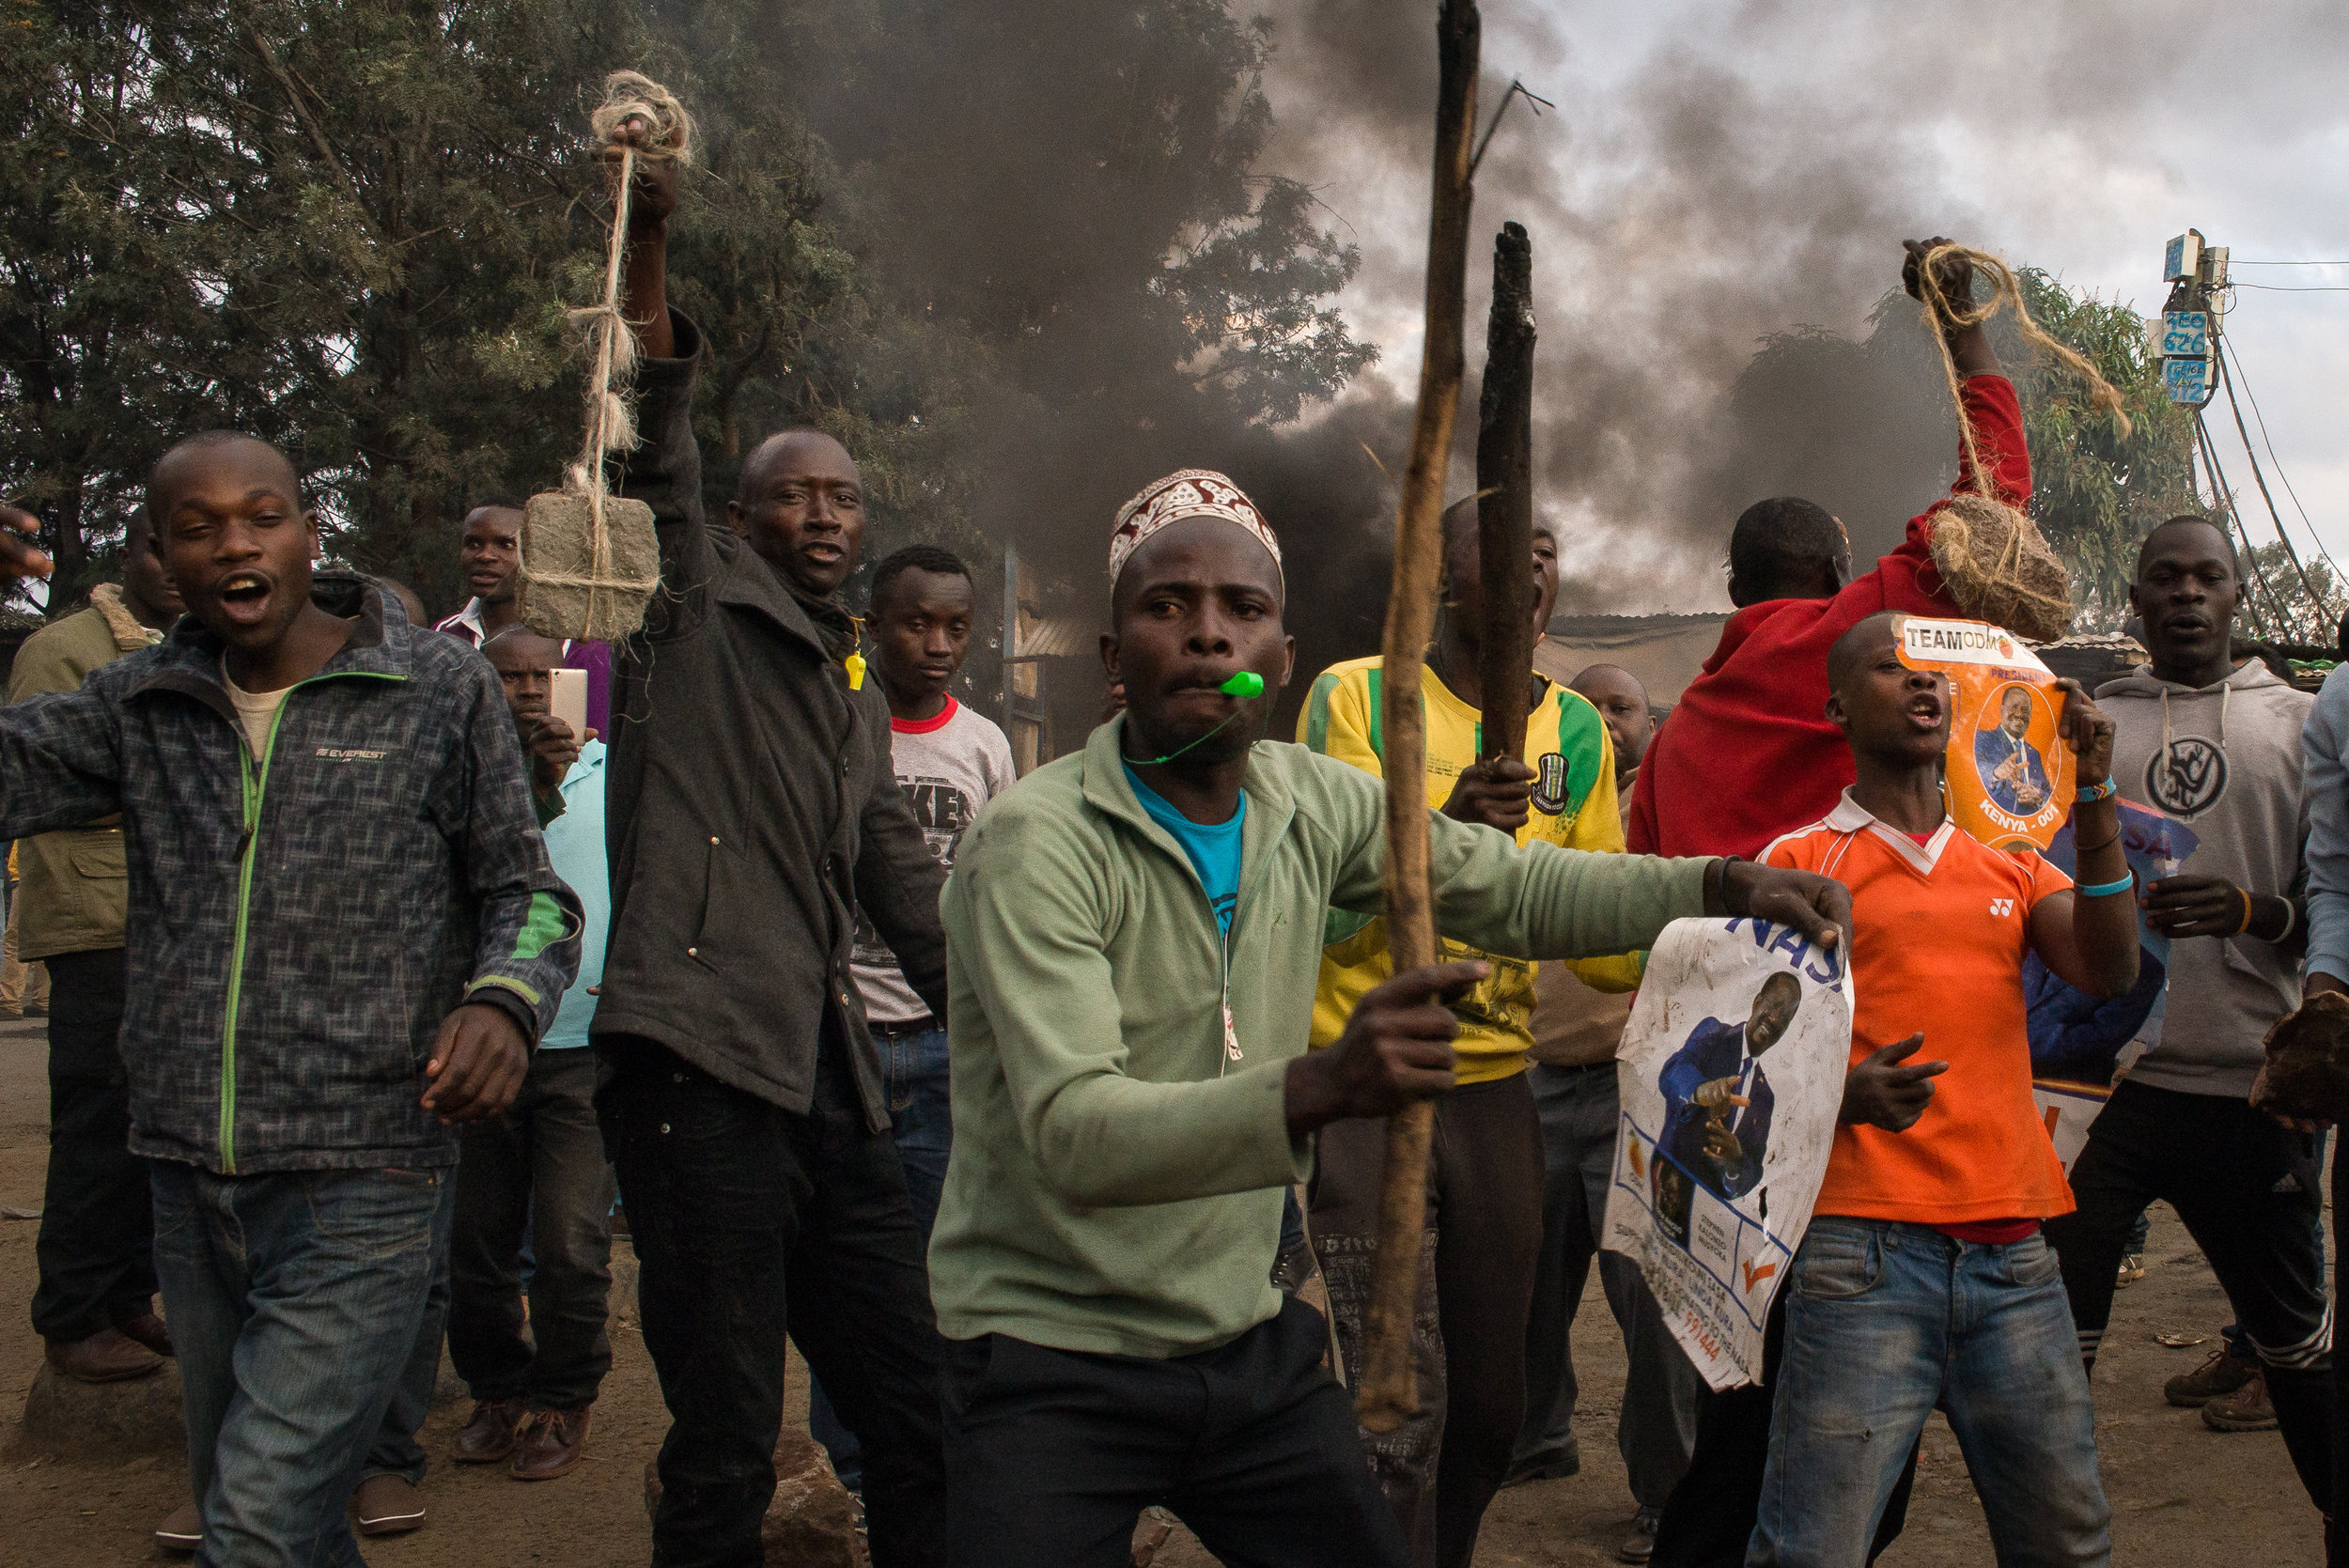 Men arm themselves with stones and clubs before clashing with residents in Kibera, an informal settlement in Nairobi, Kenya. The men supported presidential candidate Raila Odinga of the National Super Alliance over current President Uhuru Kenyatta. Credit:Katie G. Nelson/PRI